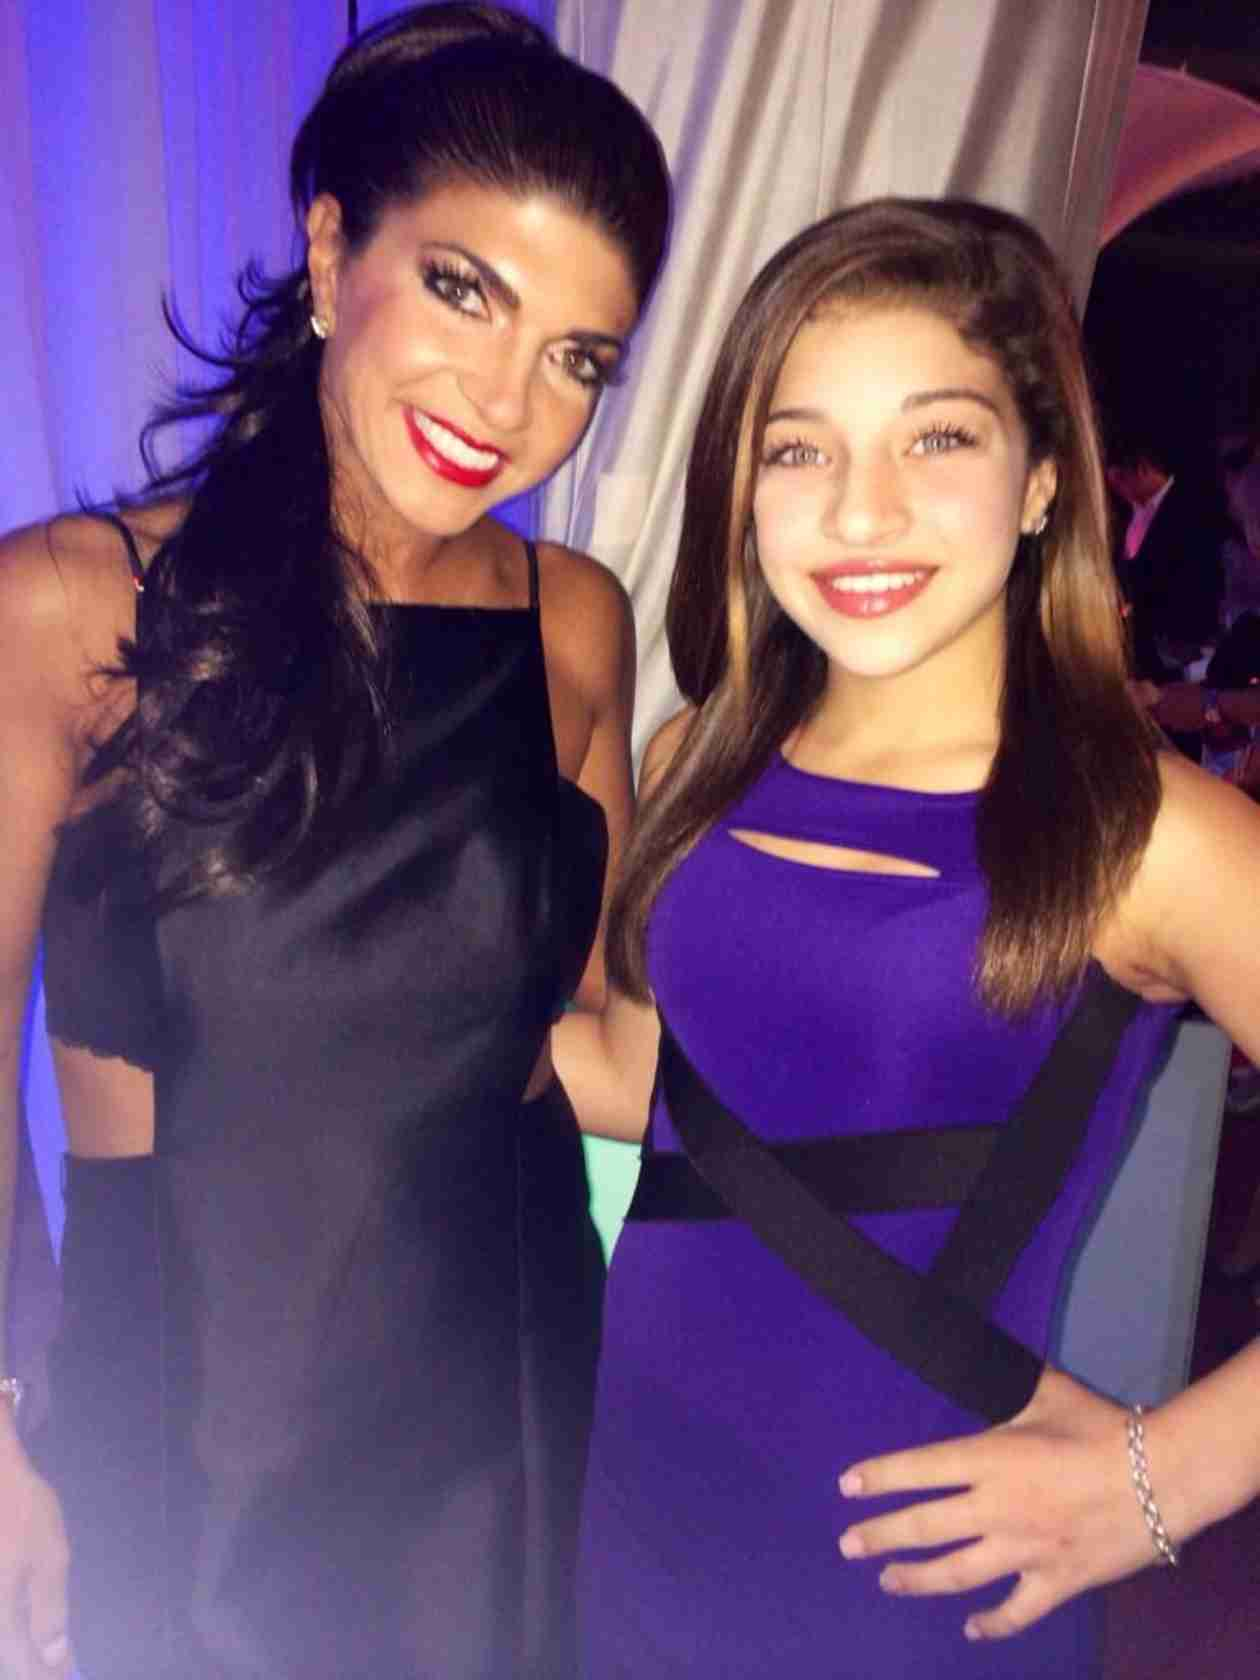 How Does Teresa Giudice Feel About Gia Having Kissed a Boy?